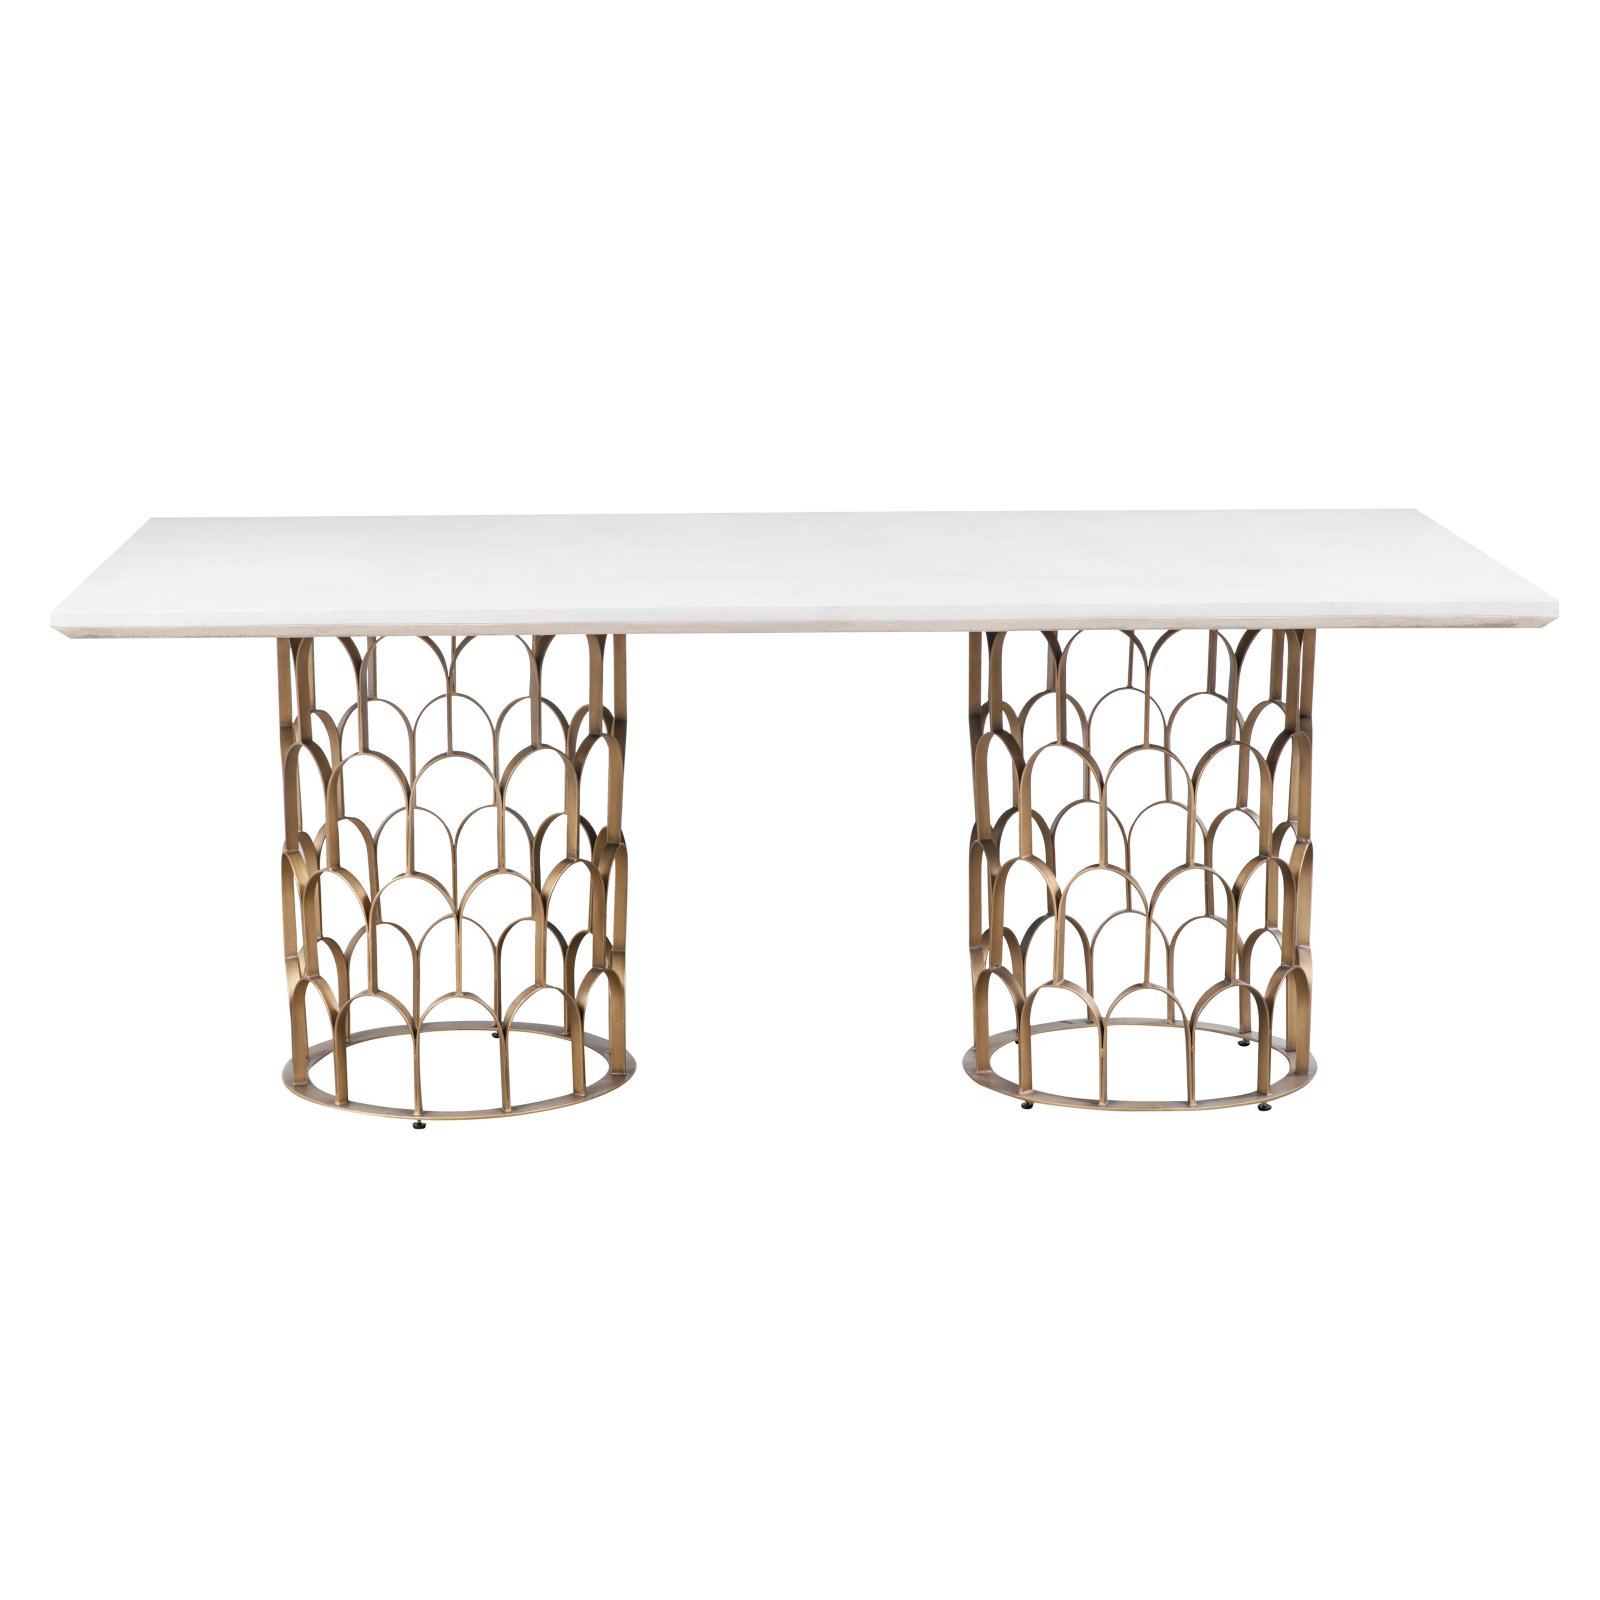 Tov Furniture Gatsby Concrete Top Dining Table Concrete Dining Table Concrete Top Dining Table Dining Table In Kitchen